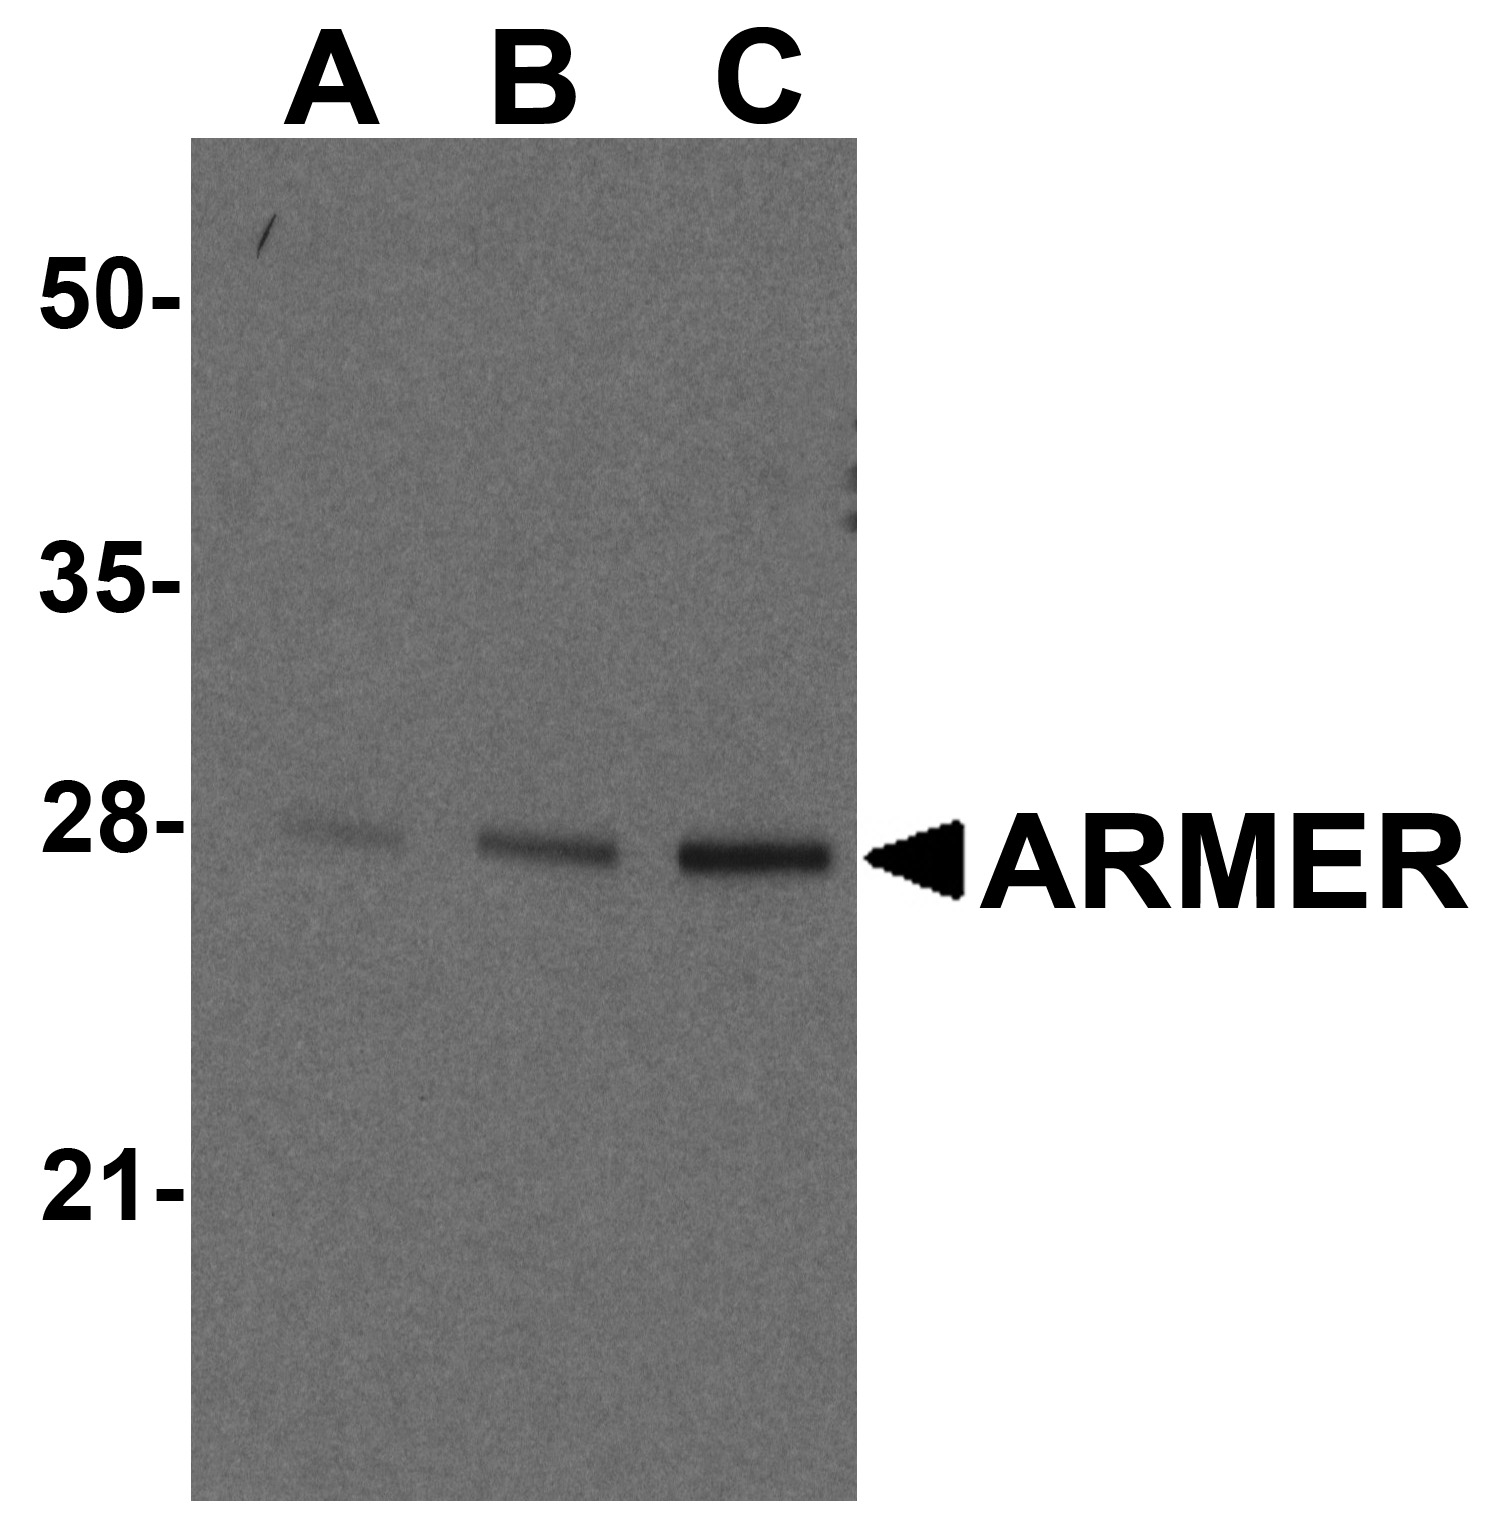 ARMER Antibody (OAPB00235) in mousemall intestine cells using Western Blot